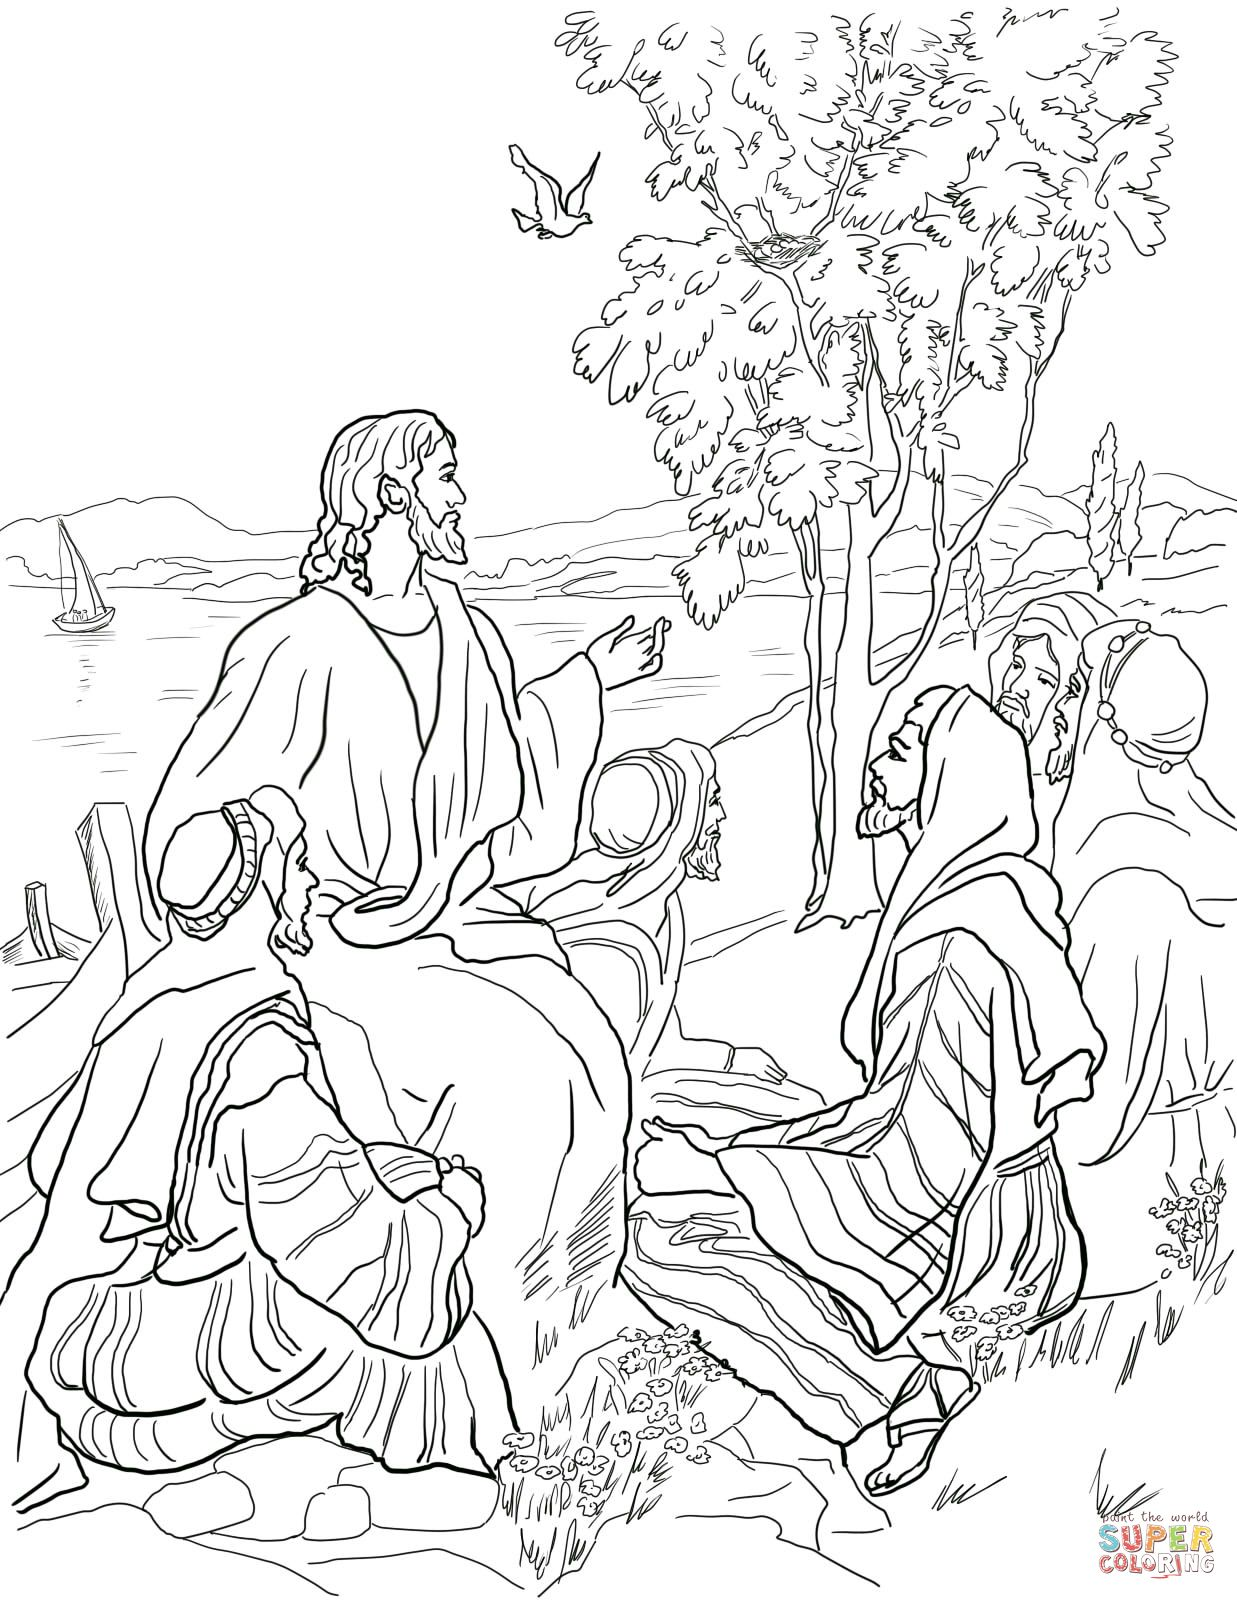 mustard tree parable coloring pages | Parable of Mustard Seed ...